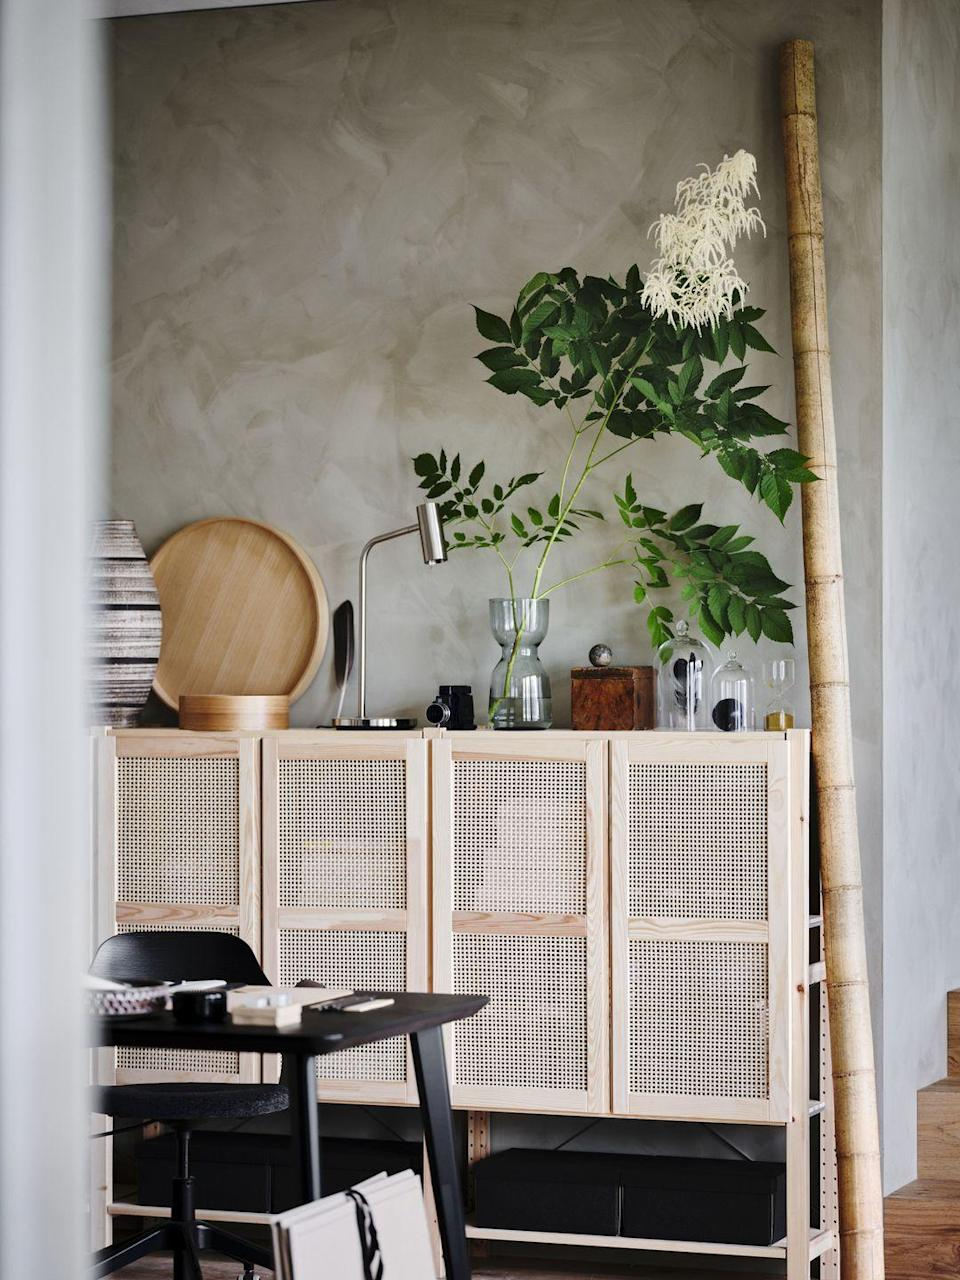 """<p>As part of the Swedish retailer's 'Home Sanctuary' range, you'll find everything you need to create a cosy and welcoming space. </p><p>""""Springtime is the perfect opportunity to hit refresh,"""" Clotilde Passalacqua, Interior Design Manager at <a href=""""https://go.redirectingat.com?id=127X1599956&url=https%3A%2F%2Fwww.ikea.com%2Fgb%2Fen%2F&sref=https%3A%2F%2Fwww.countryliving.com%2Fuk%2Fhomes-interiors%2Finteriors%2Fg35209980%2Fikea-spring-summer-transitions-range%2F"""" rel=""""nofollow noopener"""" target=""""_blank"""" data-ylk=""""slk:IKEA UK and Ireland"""" class=""""link rapid-noclick-resp"""">IKEA UK and Ireland</a>, says. </p><p>""""With lighter mornings and evenings our spaces begin to feel more rejuvenated and airier, giving an aura of renewal and promise for the year ahead. Many of us have grown to know our homes more intimately during this unusual period, presenting us with a unique opportunity to adapt our homes to new needs."""" </p>"""